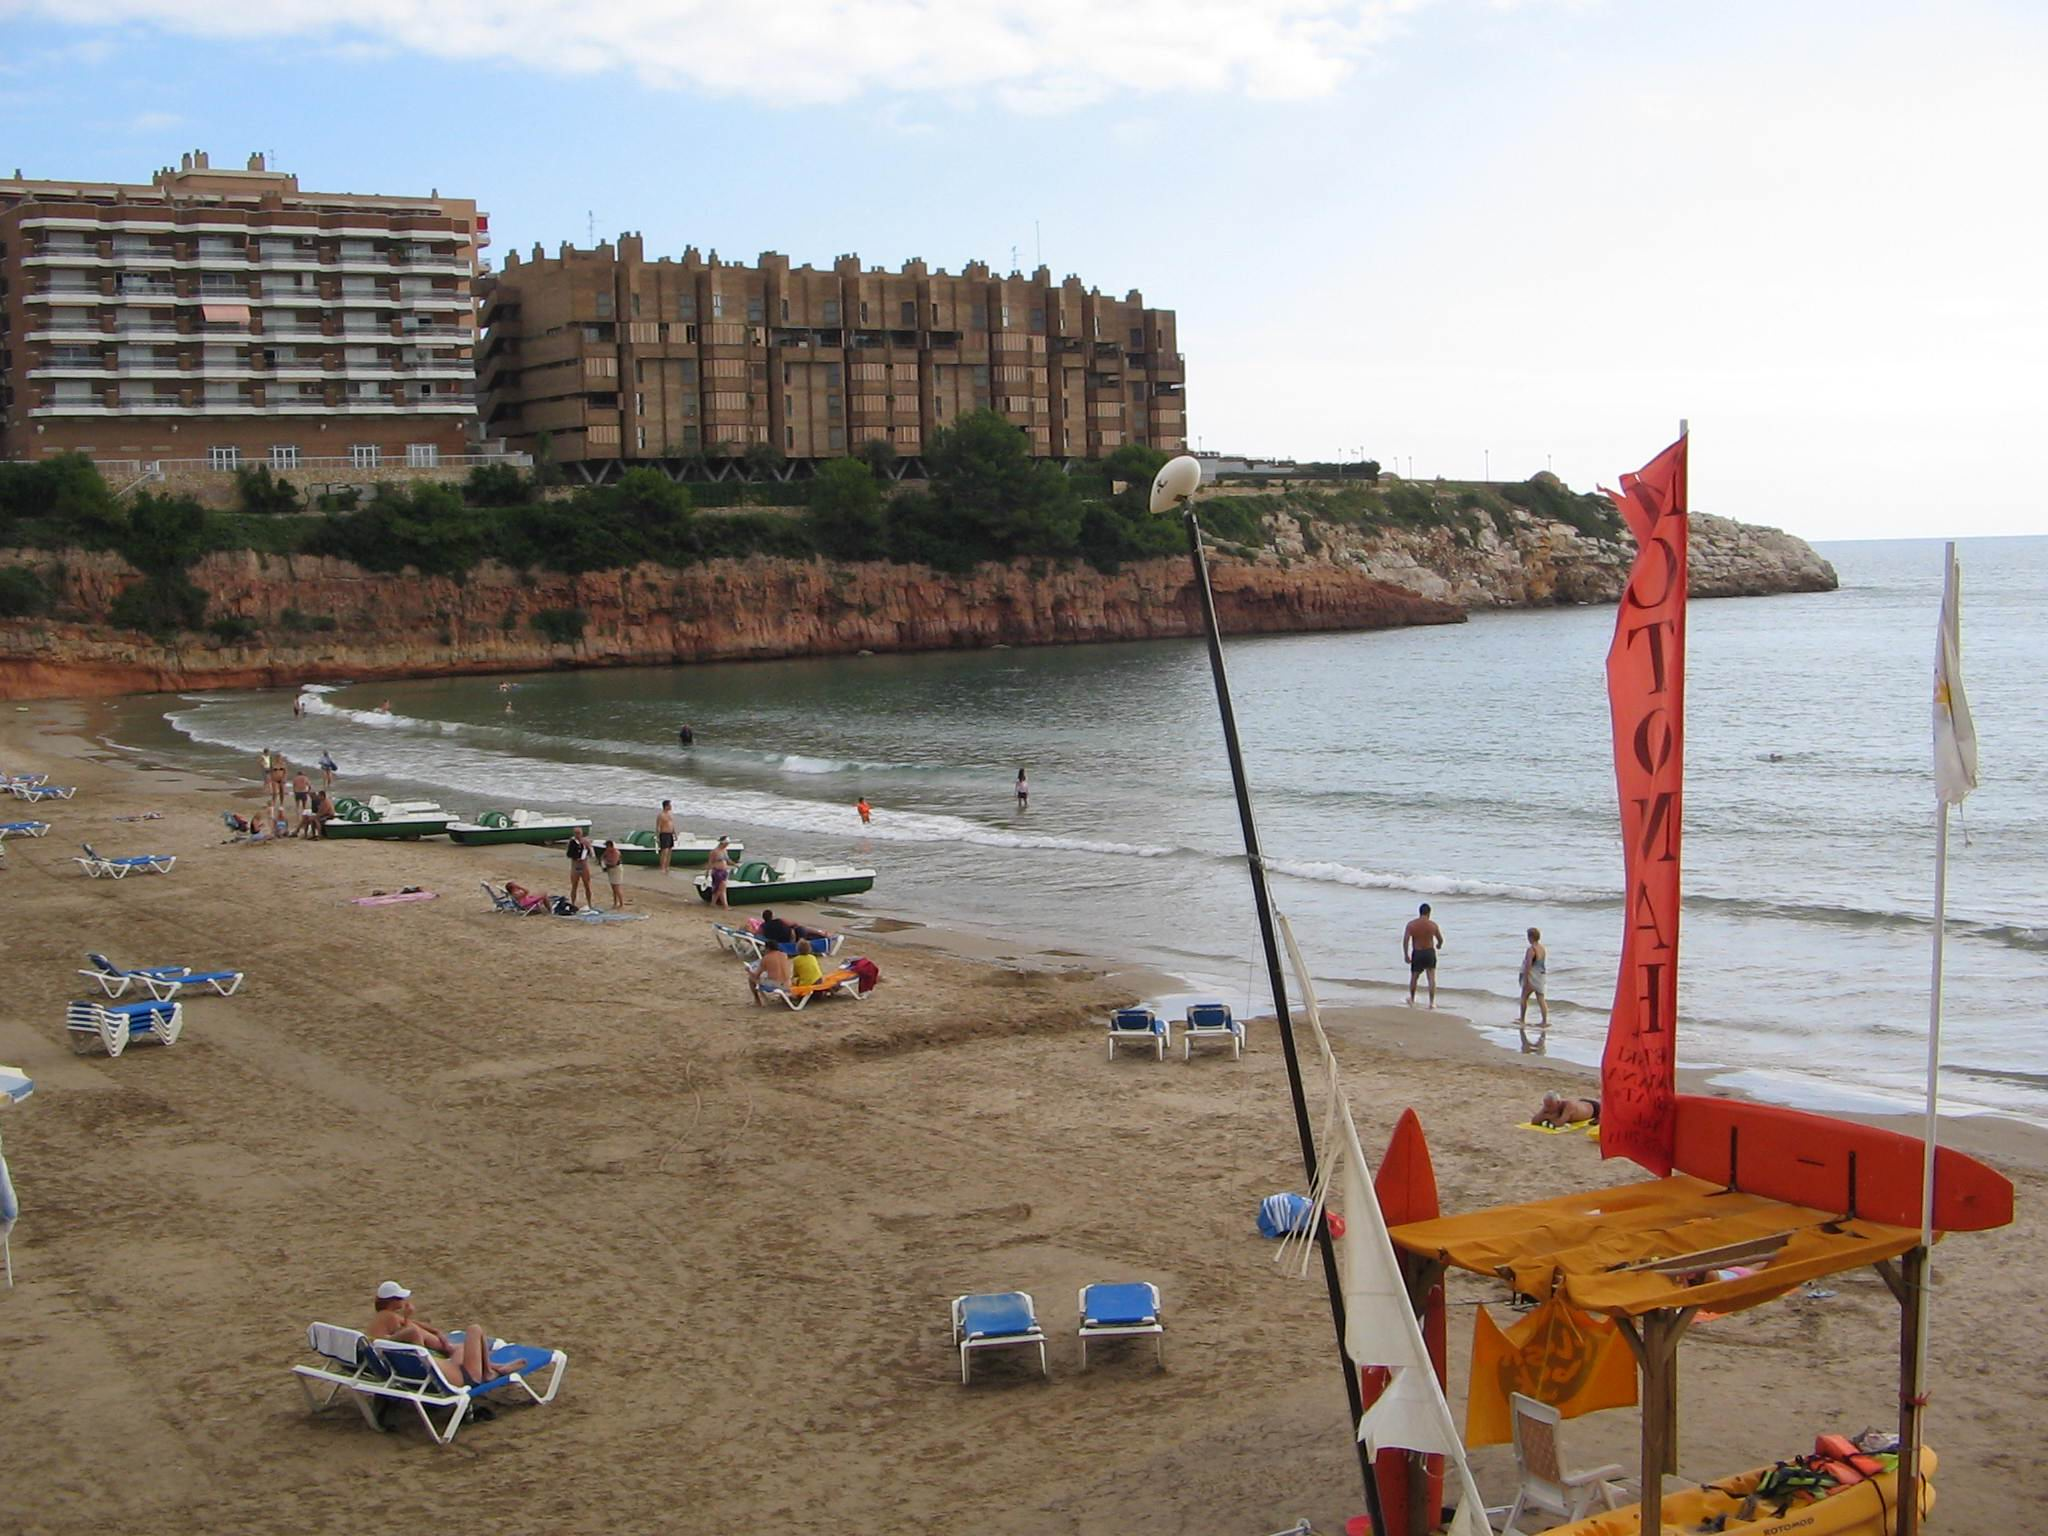 Playa Els Capellans